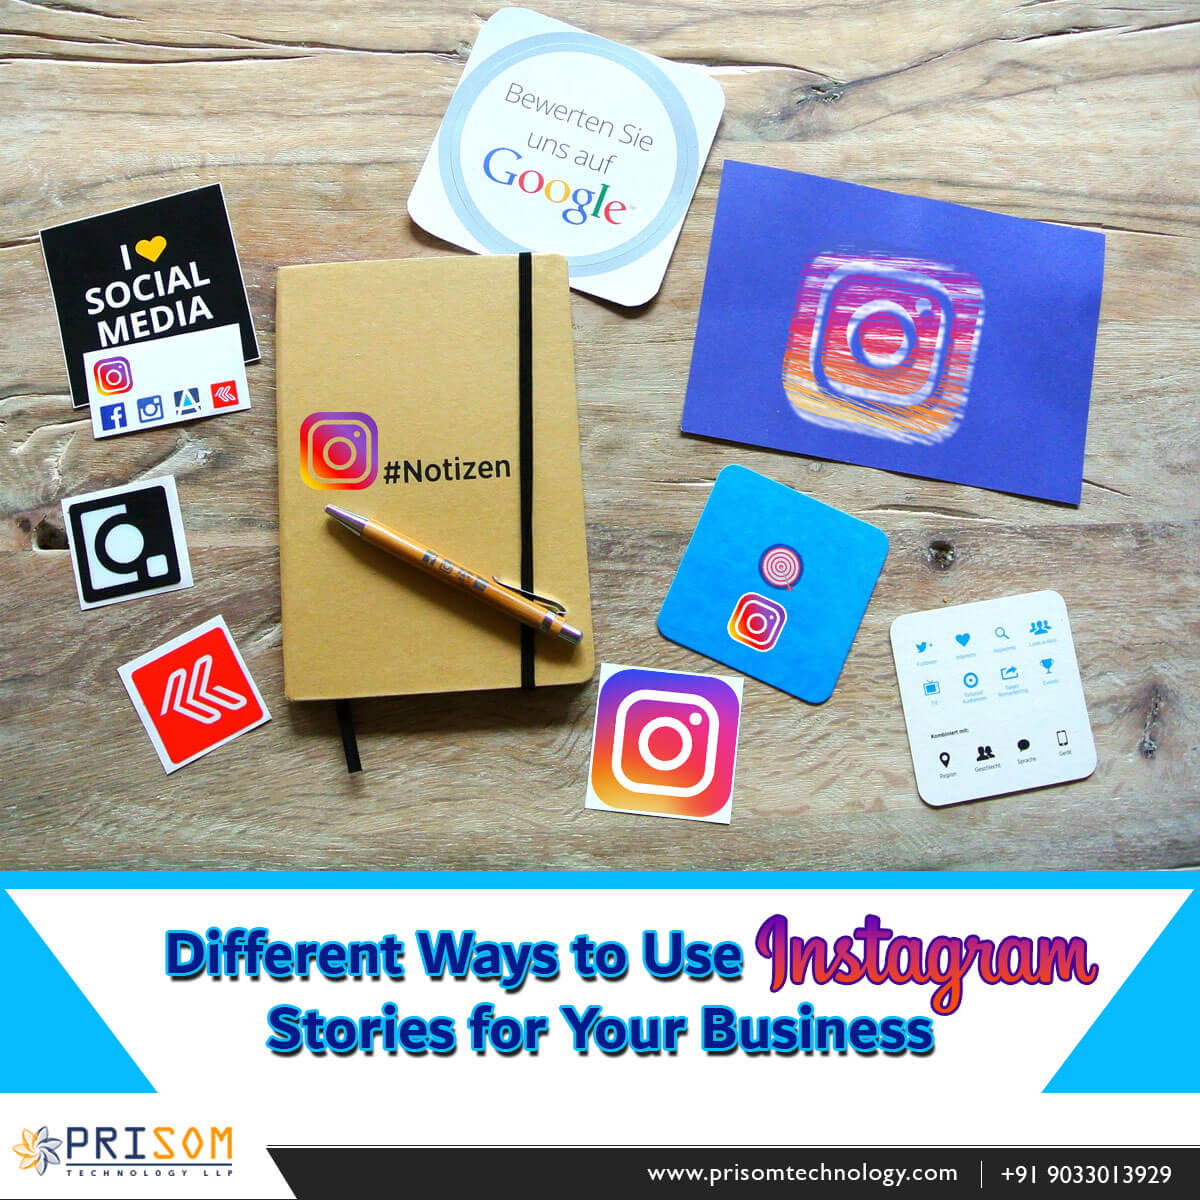 Different Ways to Use Instagram Stories for Your Business